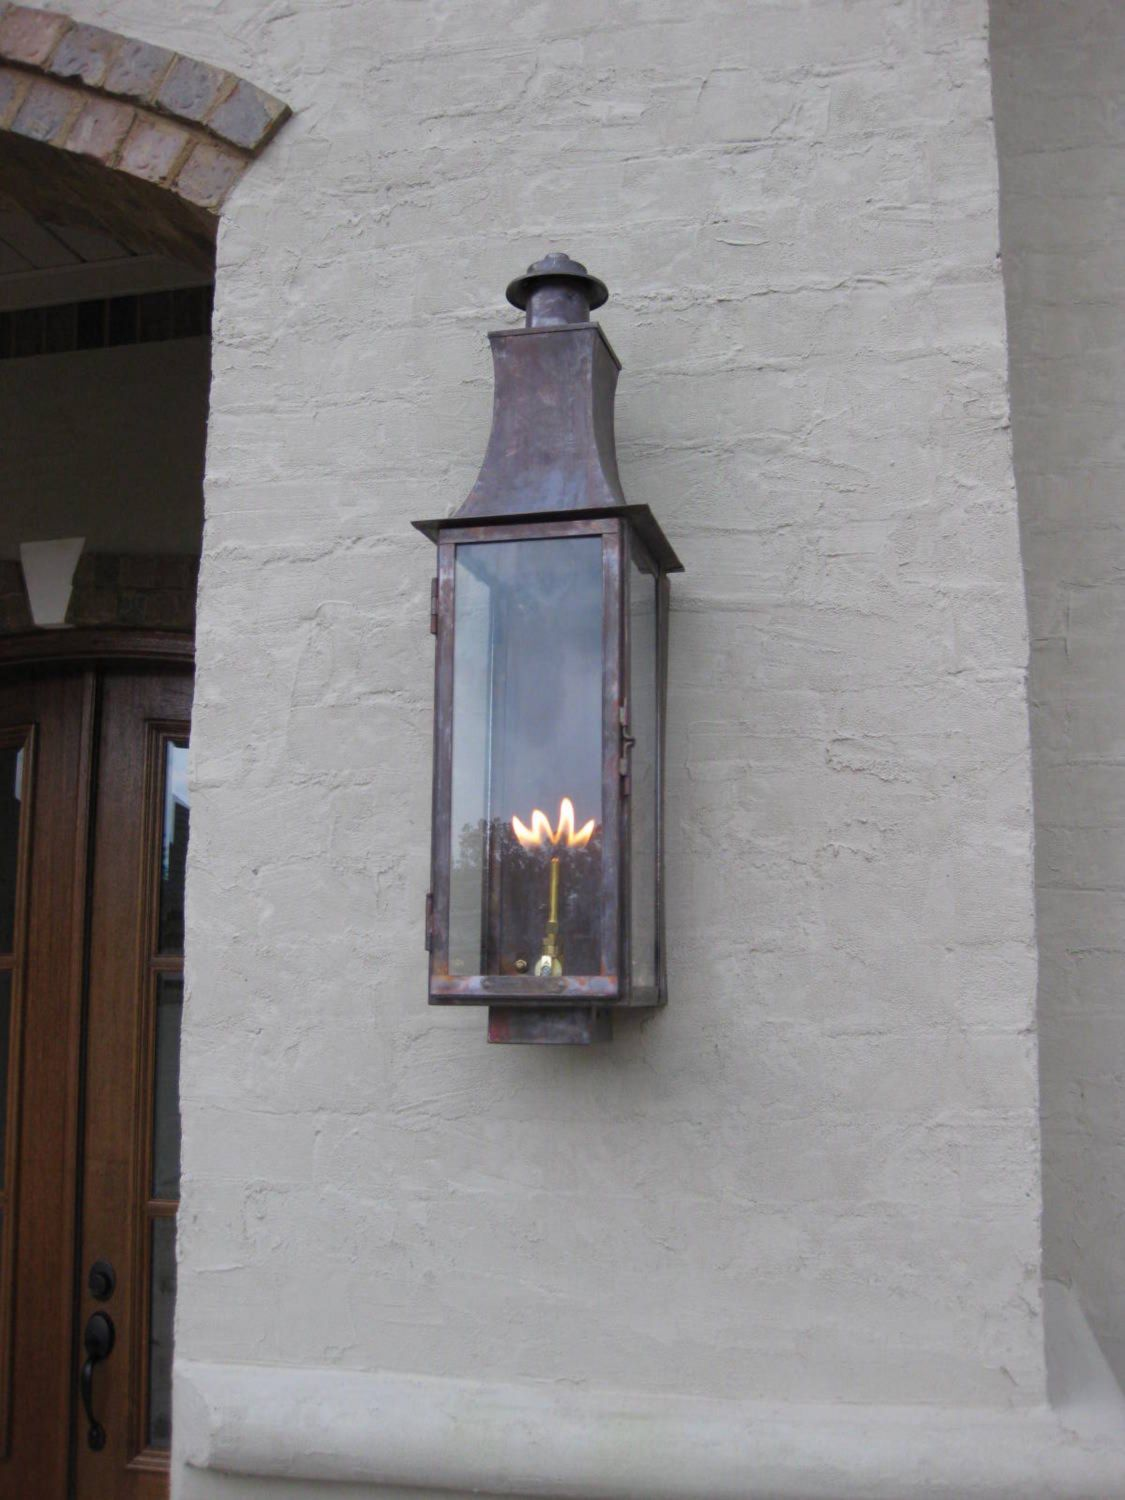 Shop lanterns in 2019 cic hc exterior exterior light - Georgian style exterior lighting ...